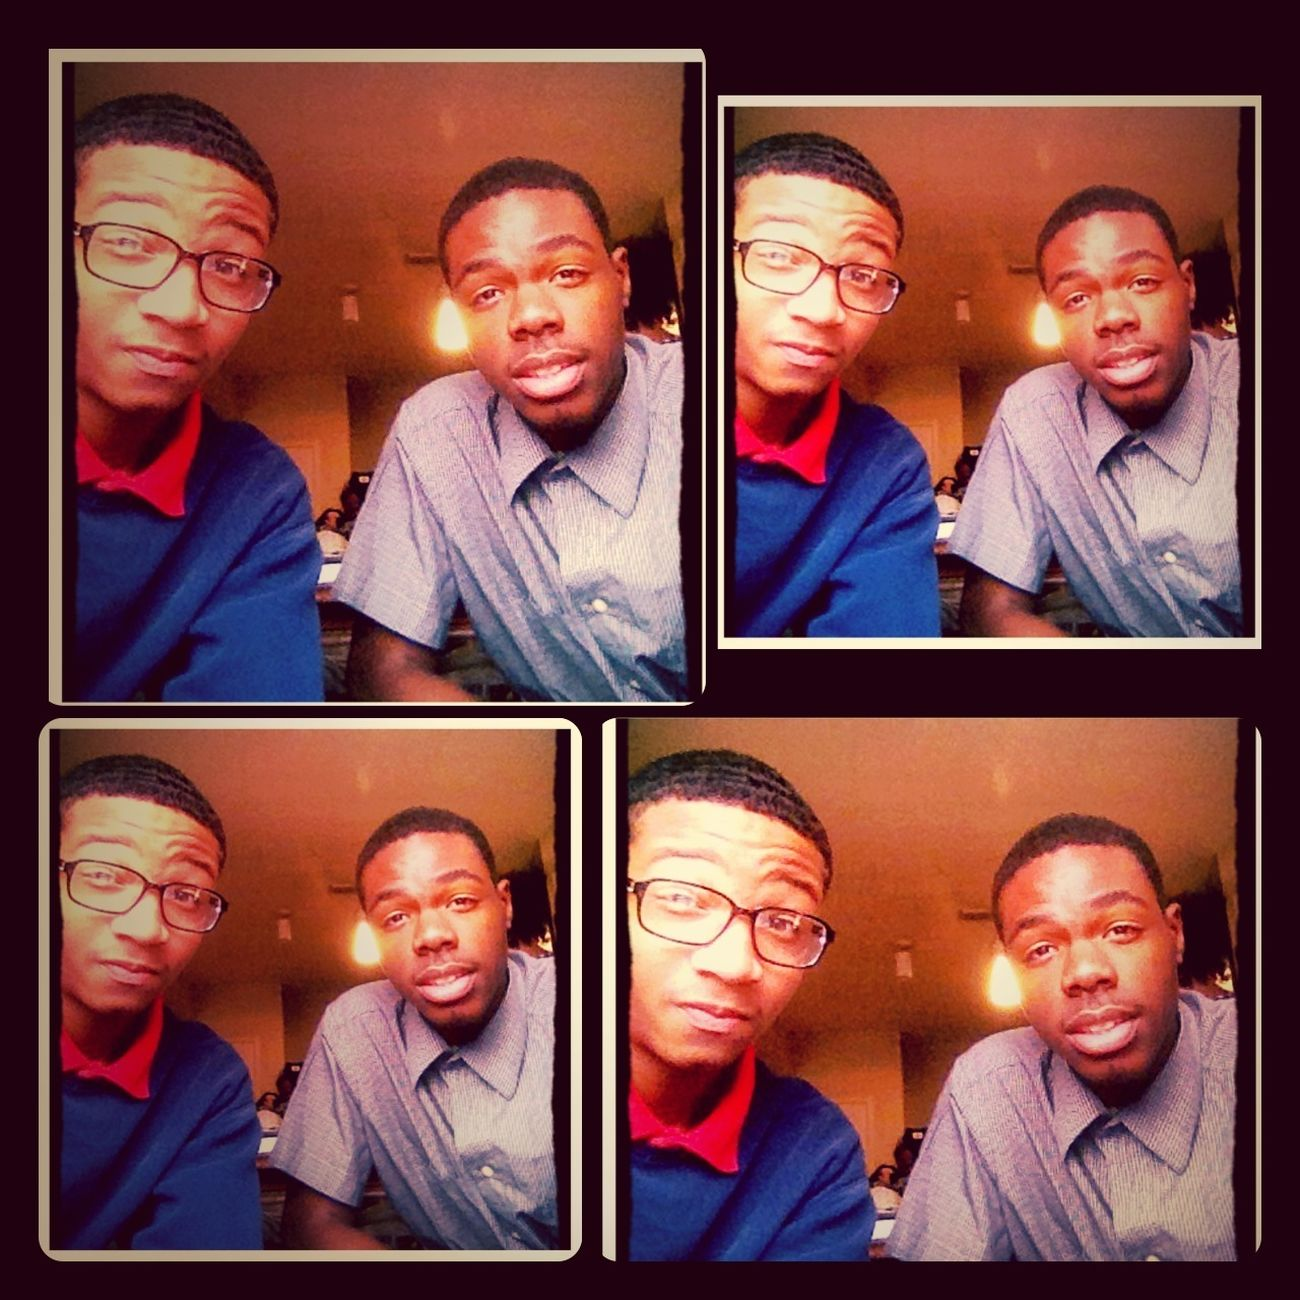 Me N My Brother Nones Look Alike Lol